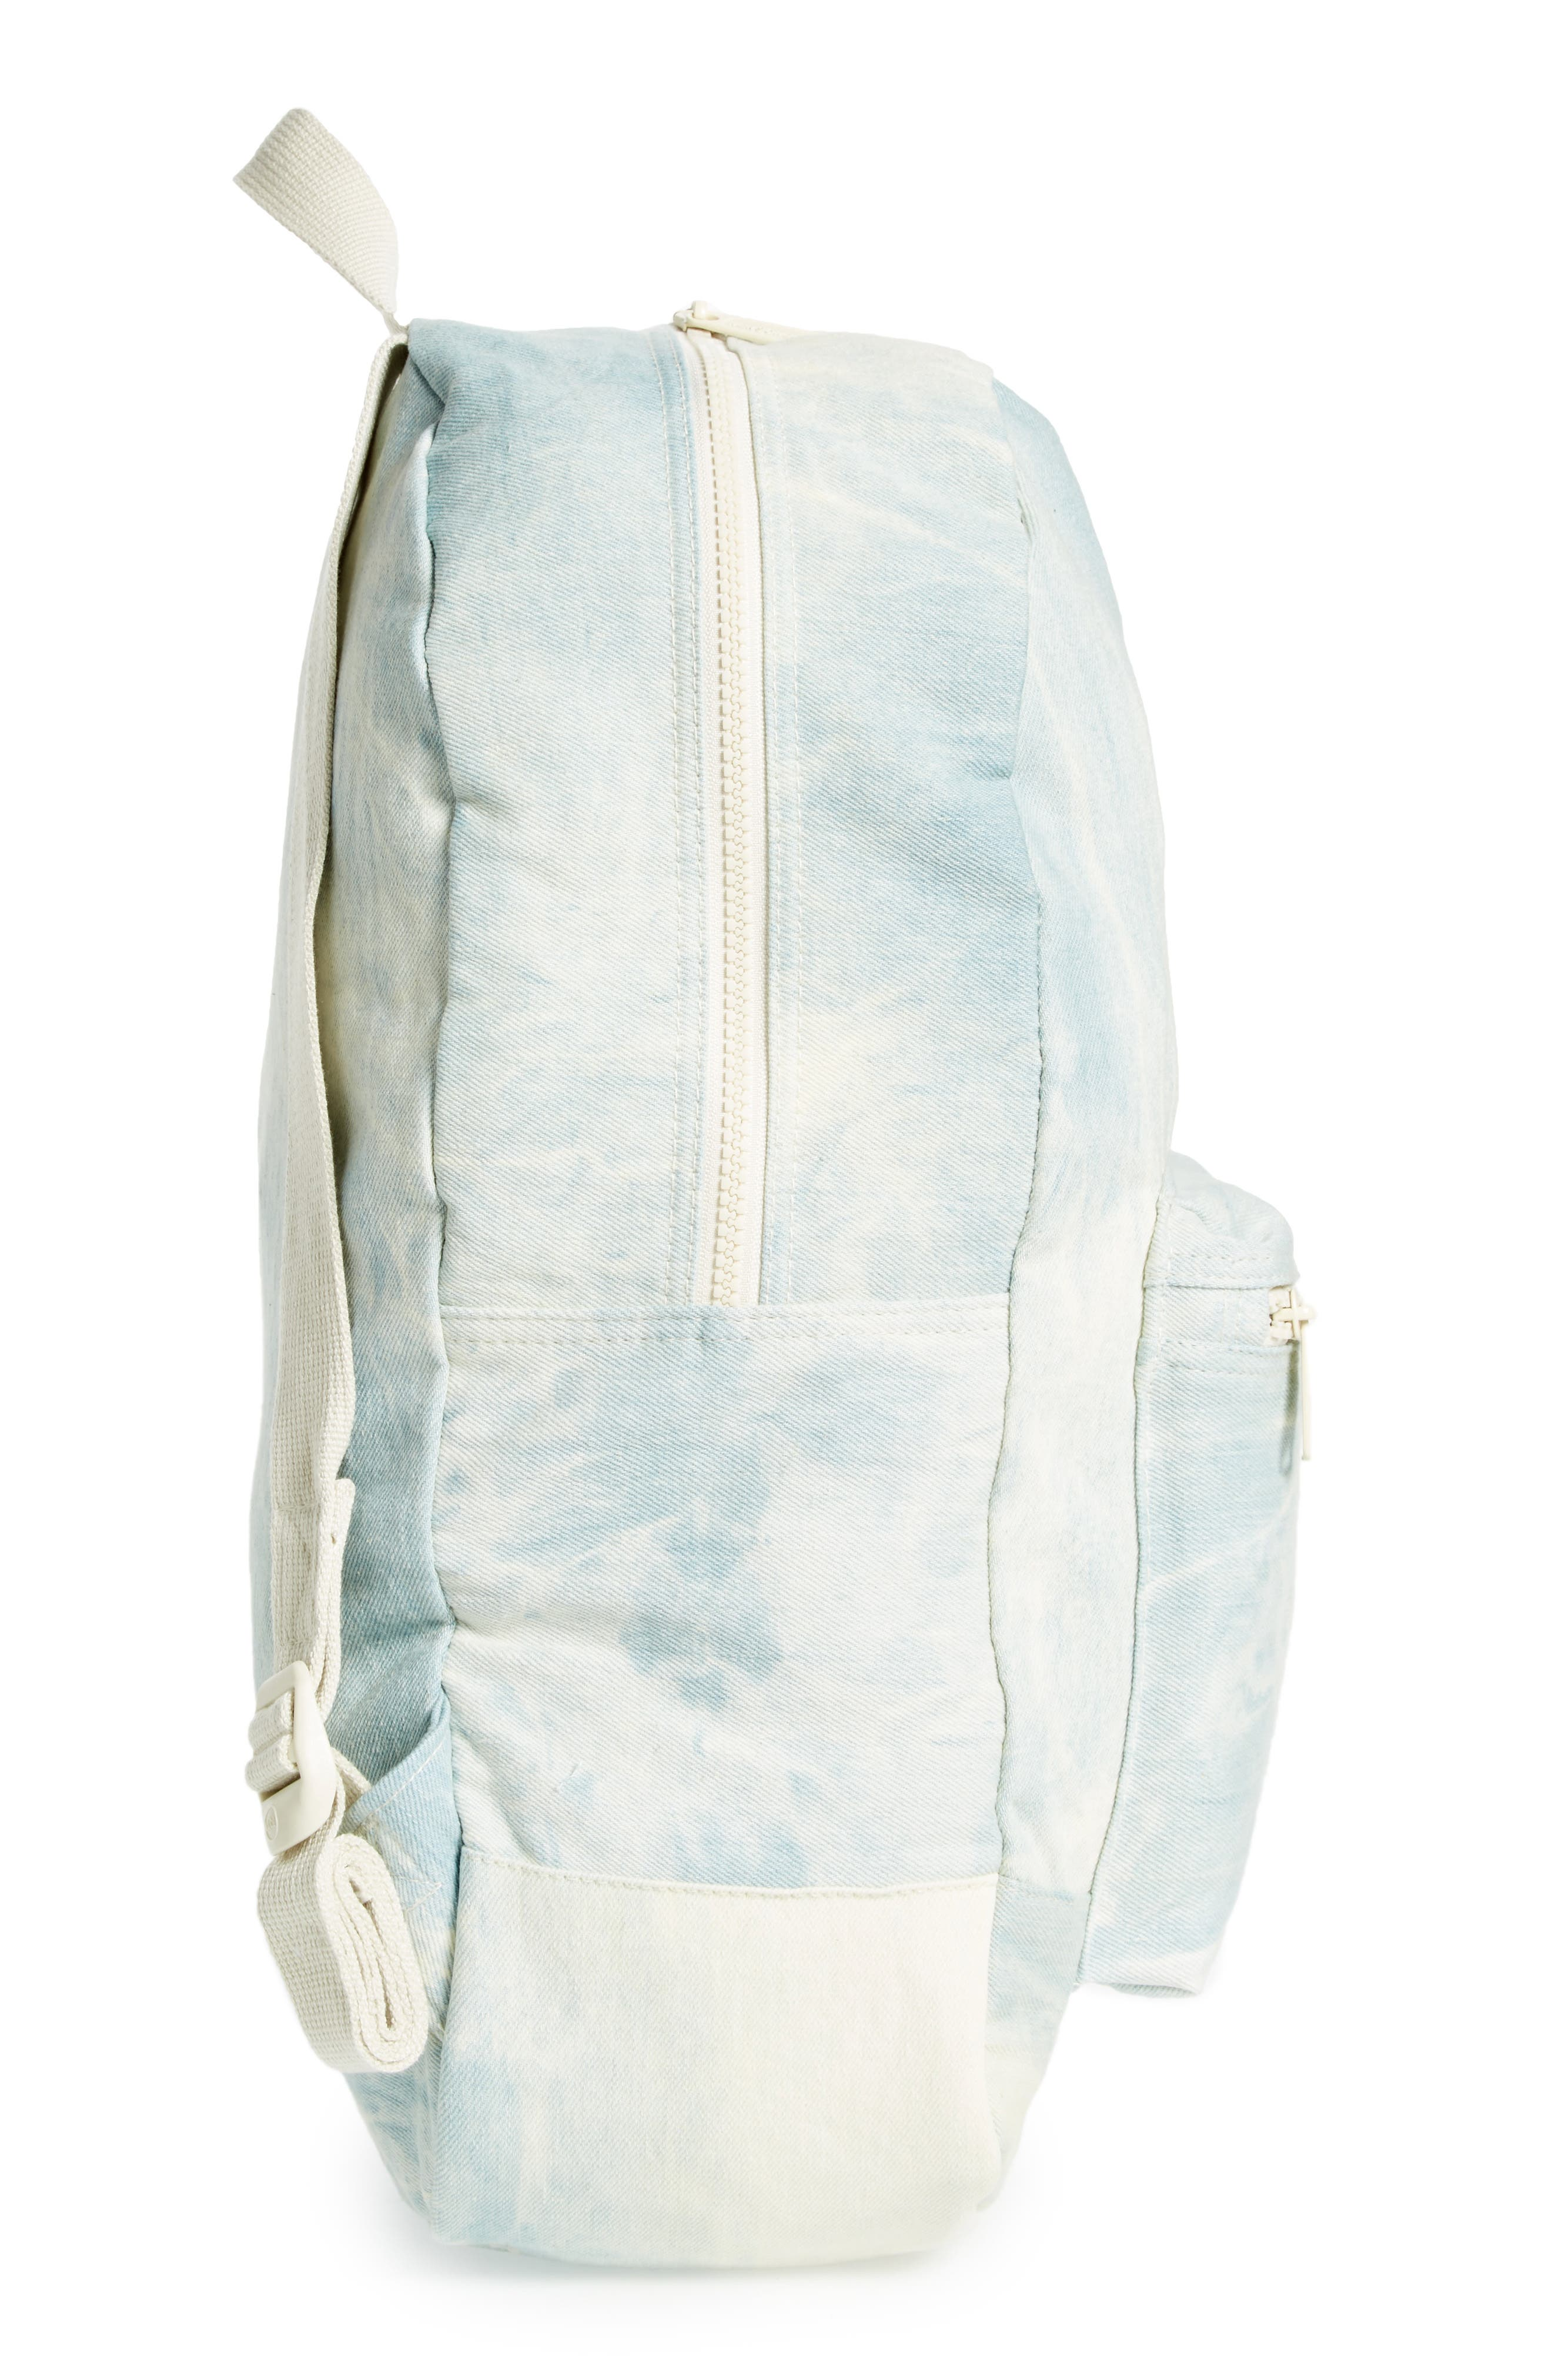 Cotton Casuals Daypack Backpack,                             Alternate thumbnail 44, color,